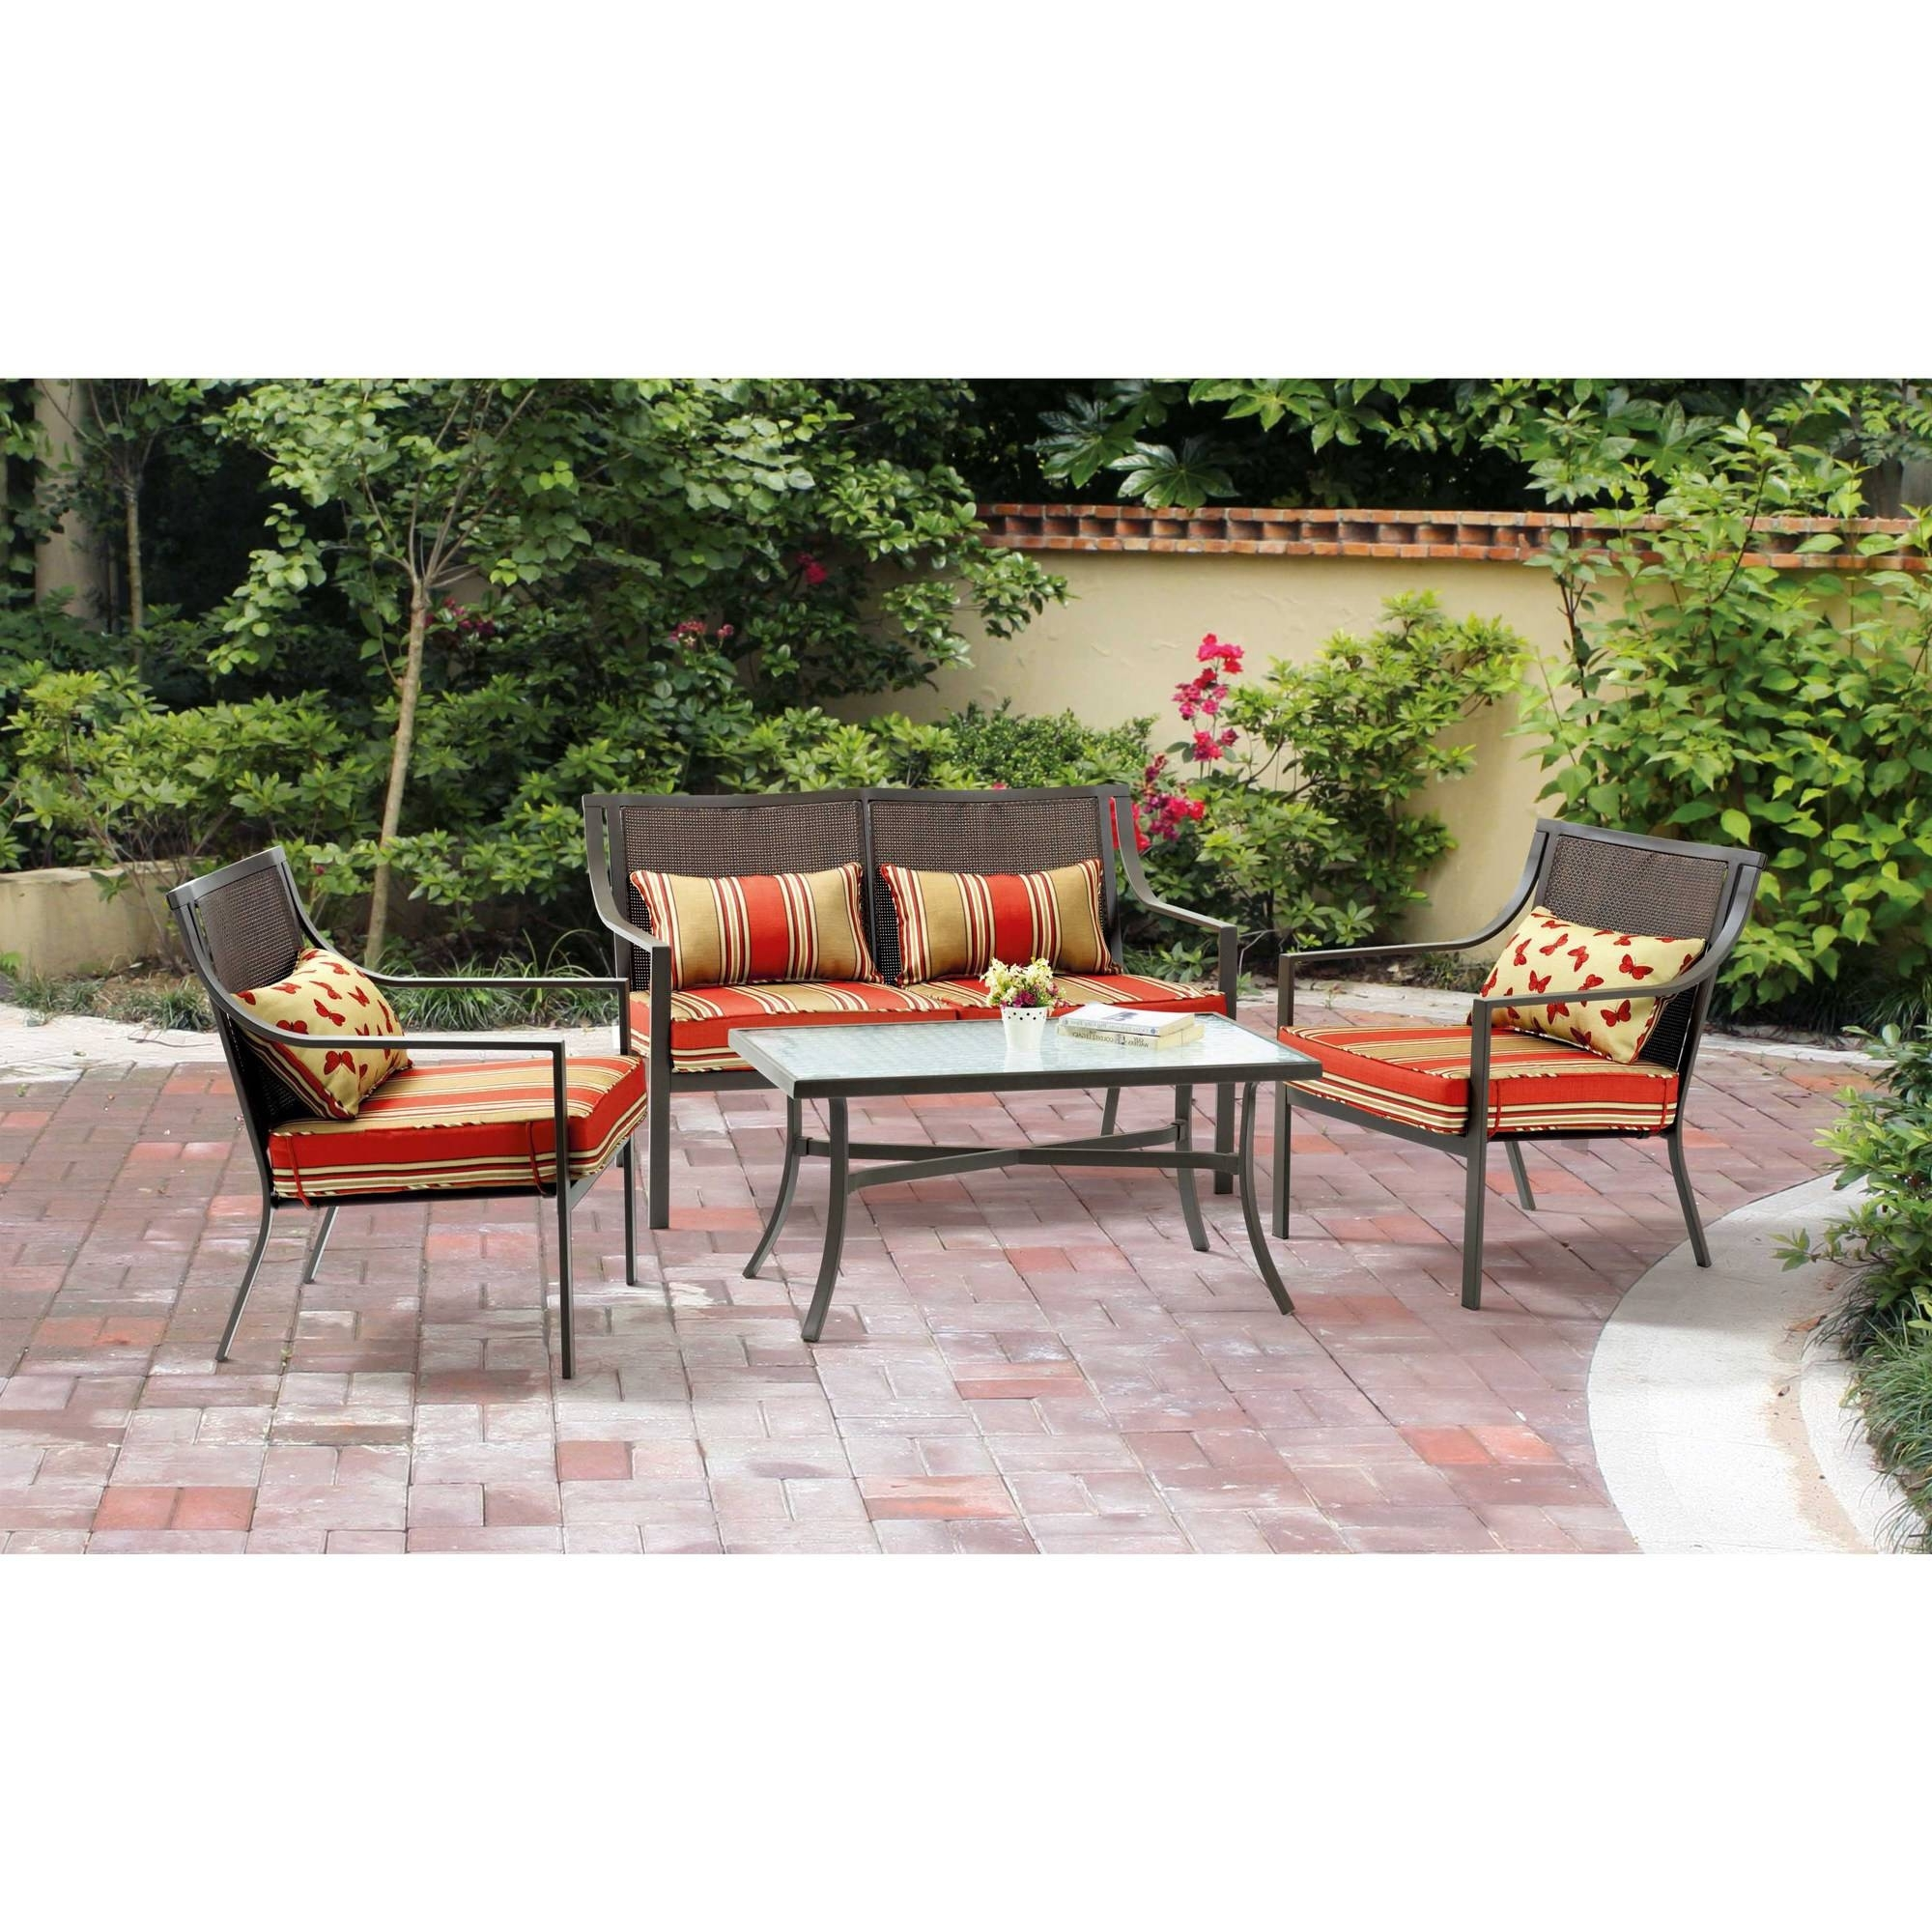 Preferred Patio Conversation Sets At Walmart Throughout Mainstays Alexandra Square 4 Piece Patio Conversation Set, Seats (View 9 of 20)